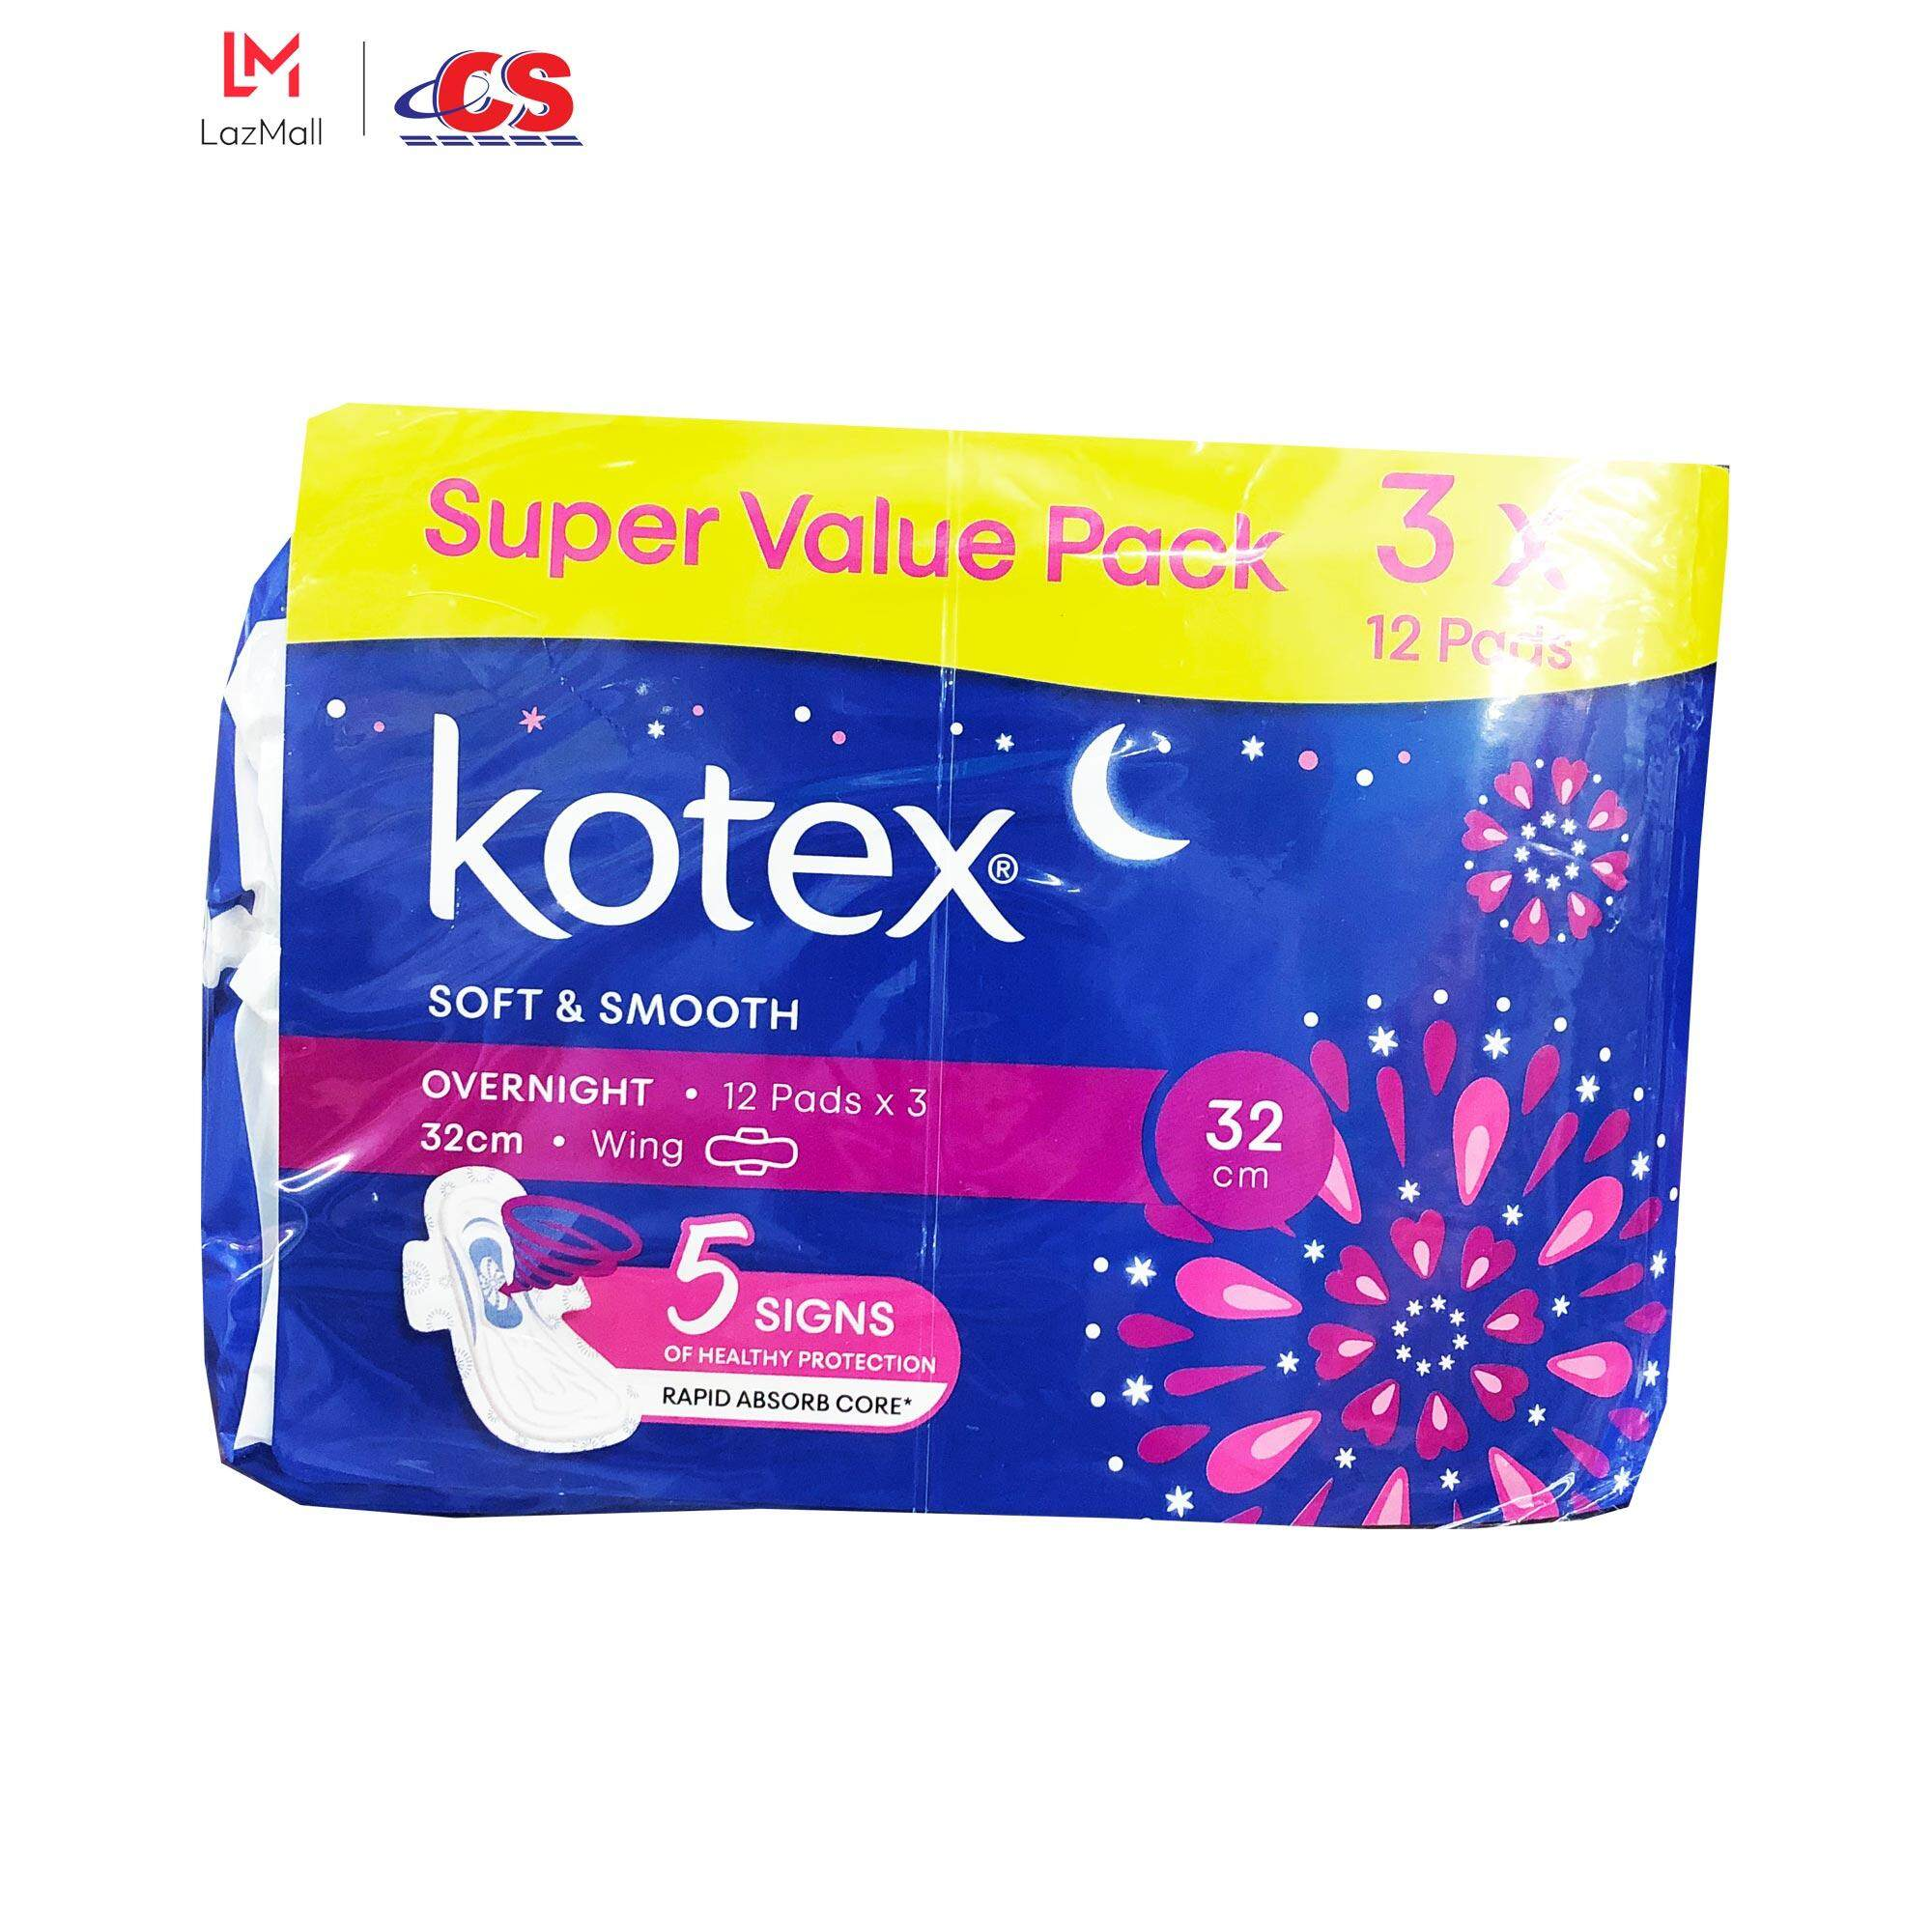 KOTEX Soft and Smooth Overnight Wing 32cm 3x12s